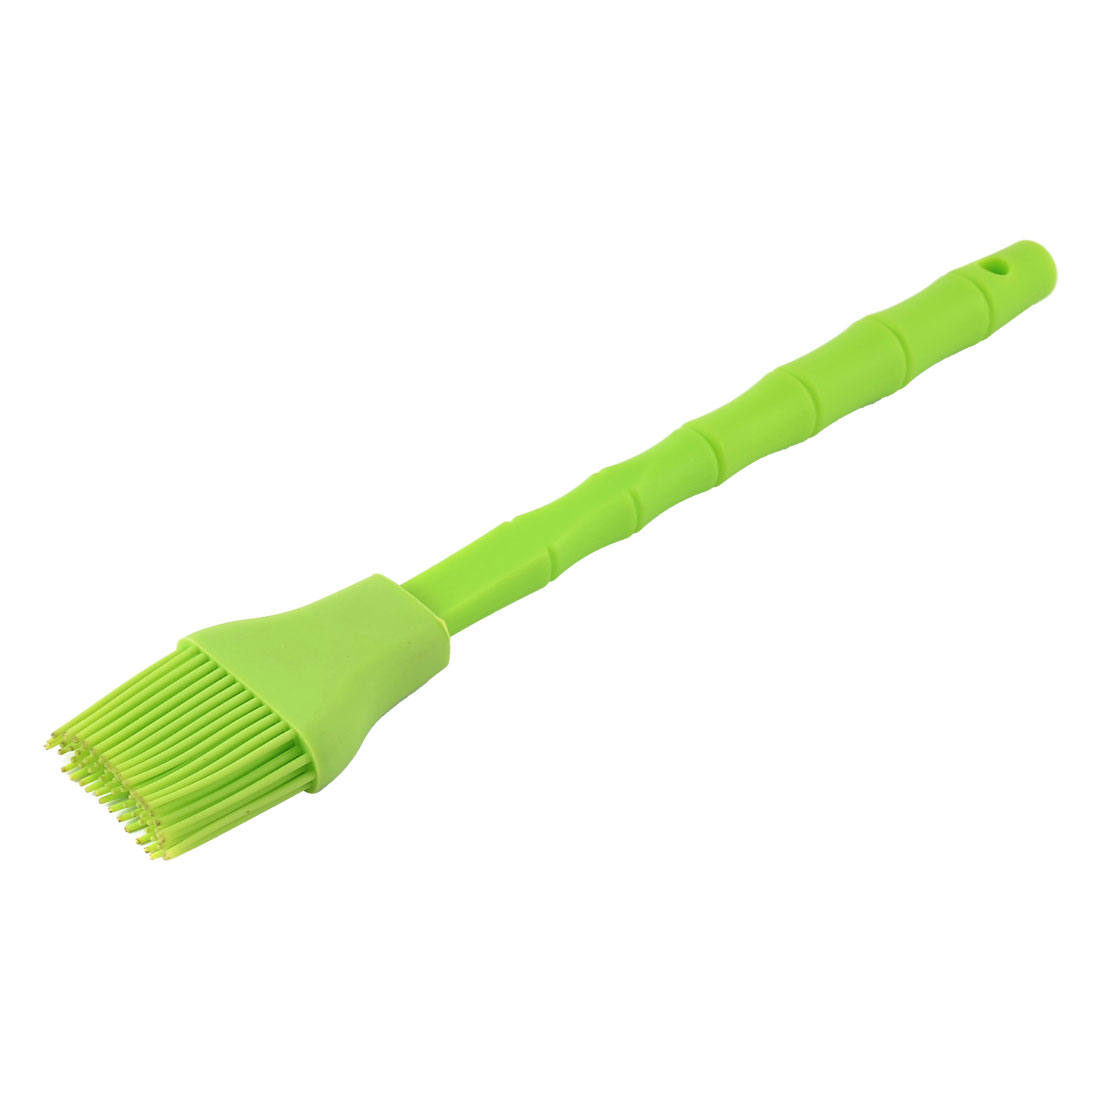 Plastic Handle Bamboo Shaped Heat Resistant Baking Pastry Basting Brush Green